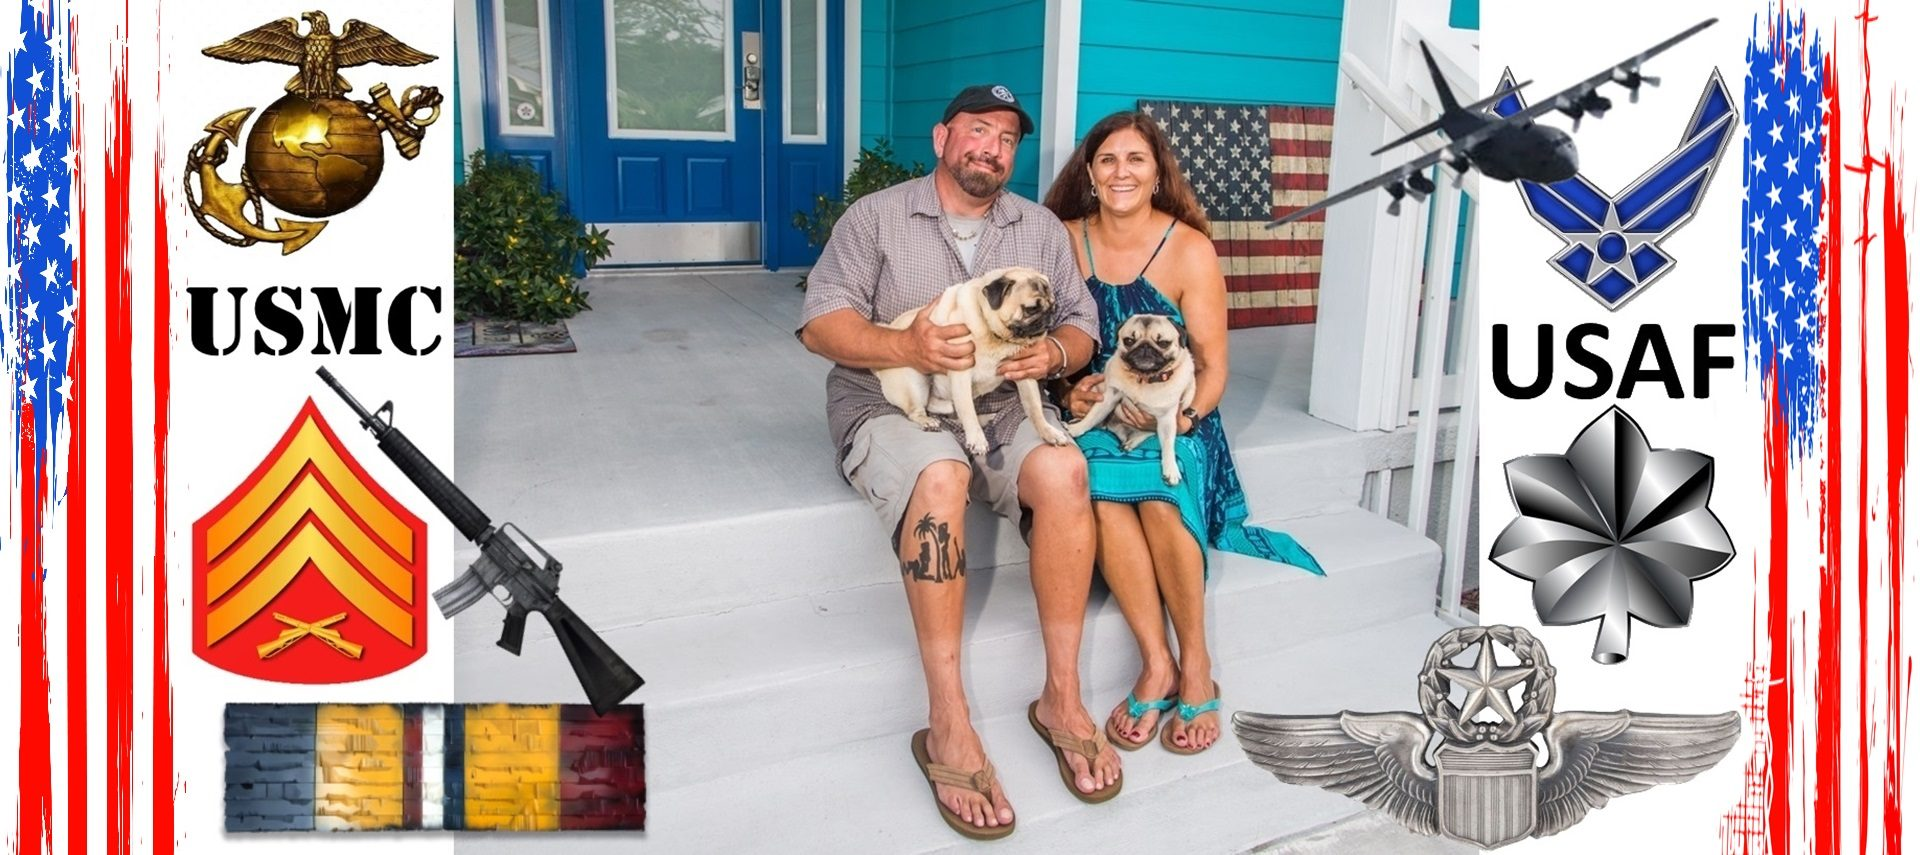 Couple on steps of house holding pug dogs, surrounded by USMC and USAF logos and insignias.